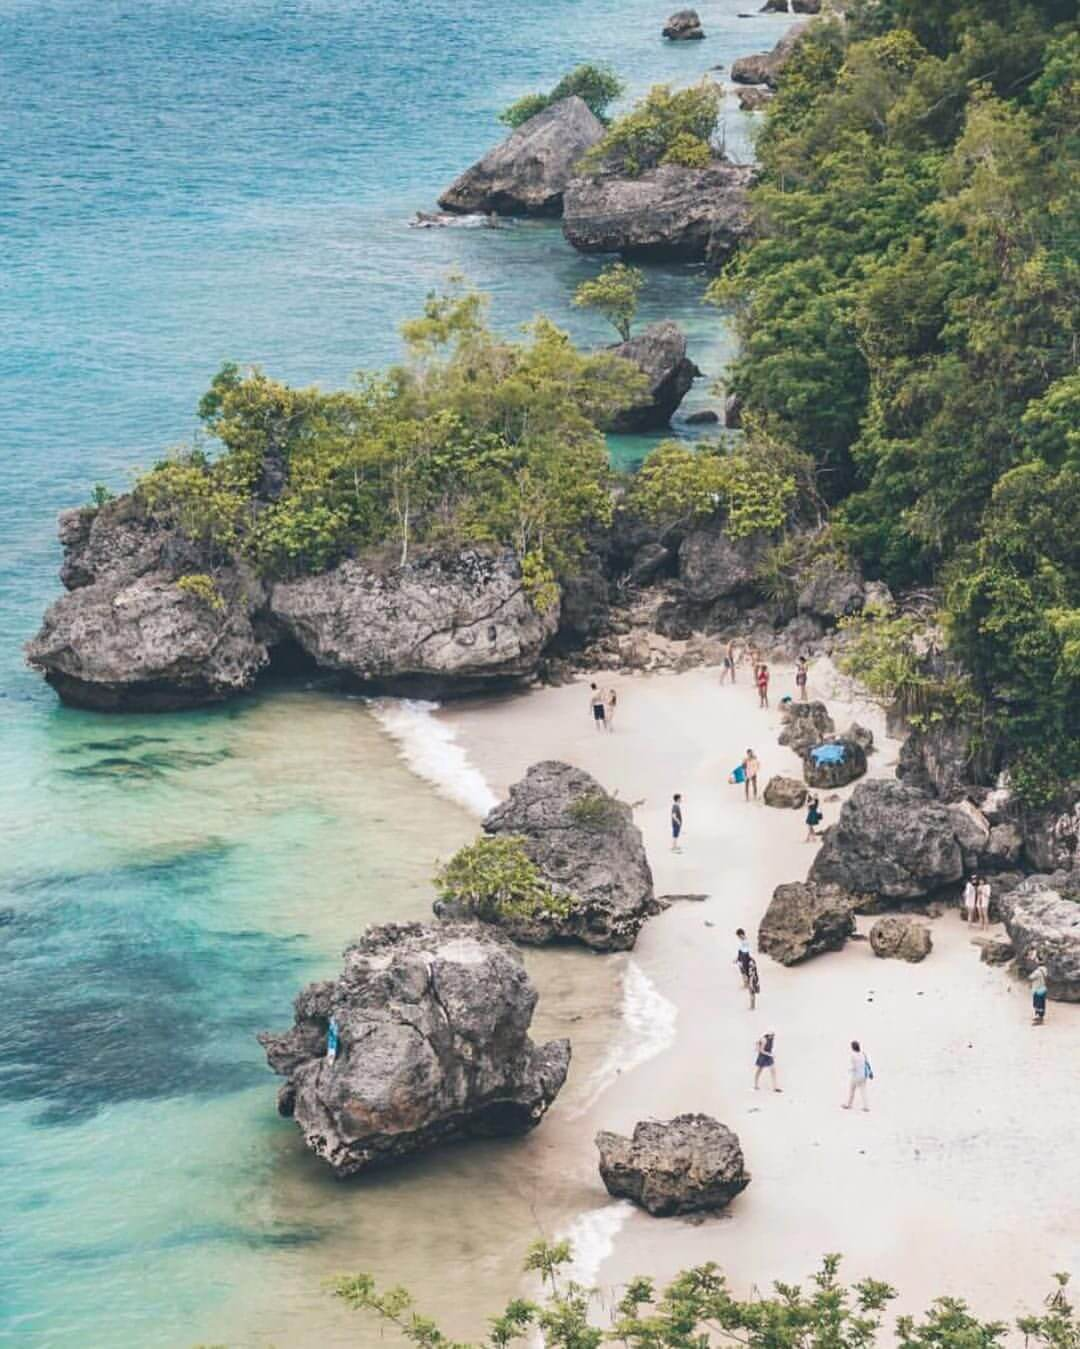 Best beaches to learn to Surf in Bali